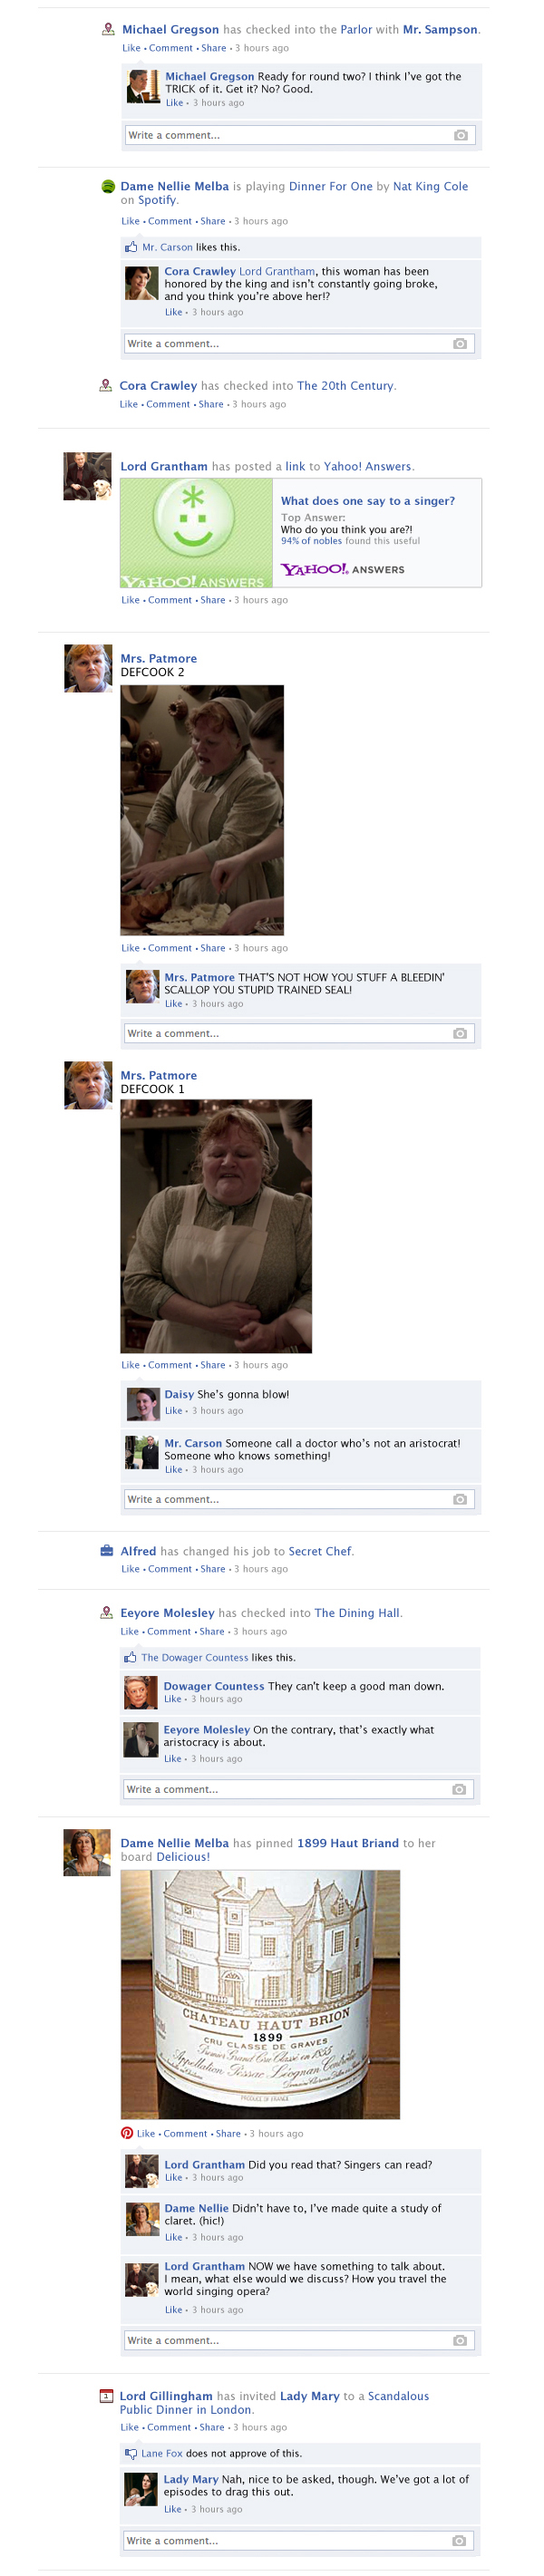 If Downton Abbey took place entirely on Facebook - Season 4, Episode 2.